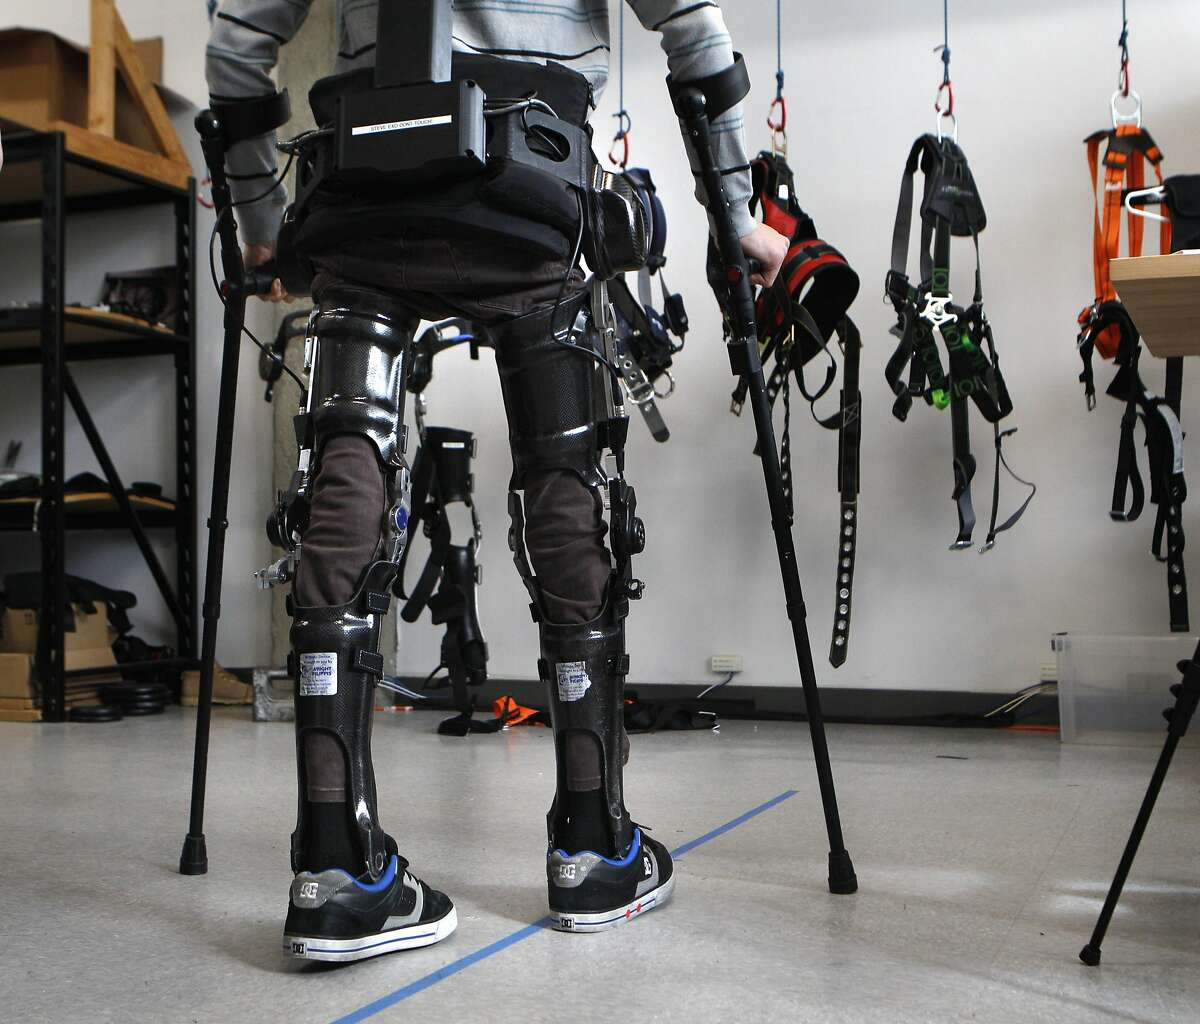 Steve Sanchez, who was paralyzed from the waist down in a BMX accident, test walks the latest robotics suit from SuitX, the Phoenix device, at their offices in Berkeley, Calif., on Thursday March 31, 2016. This suit allows people who have been paralyzed, or have limited mobility, to walk again. This latest suit technology is considered to be the lightest and cheapest at $40,000.